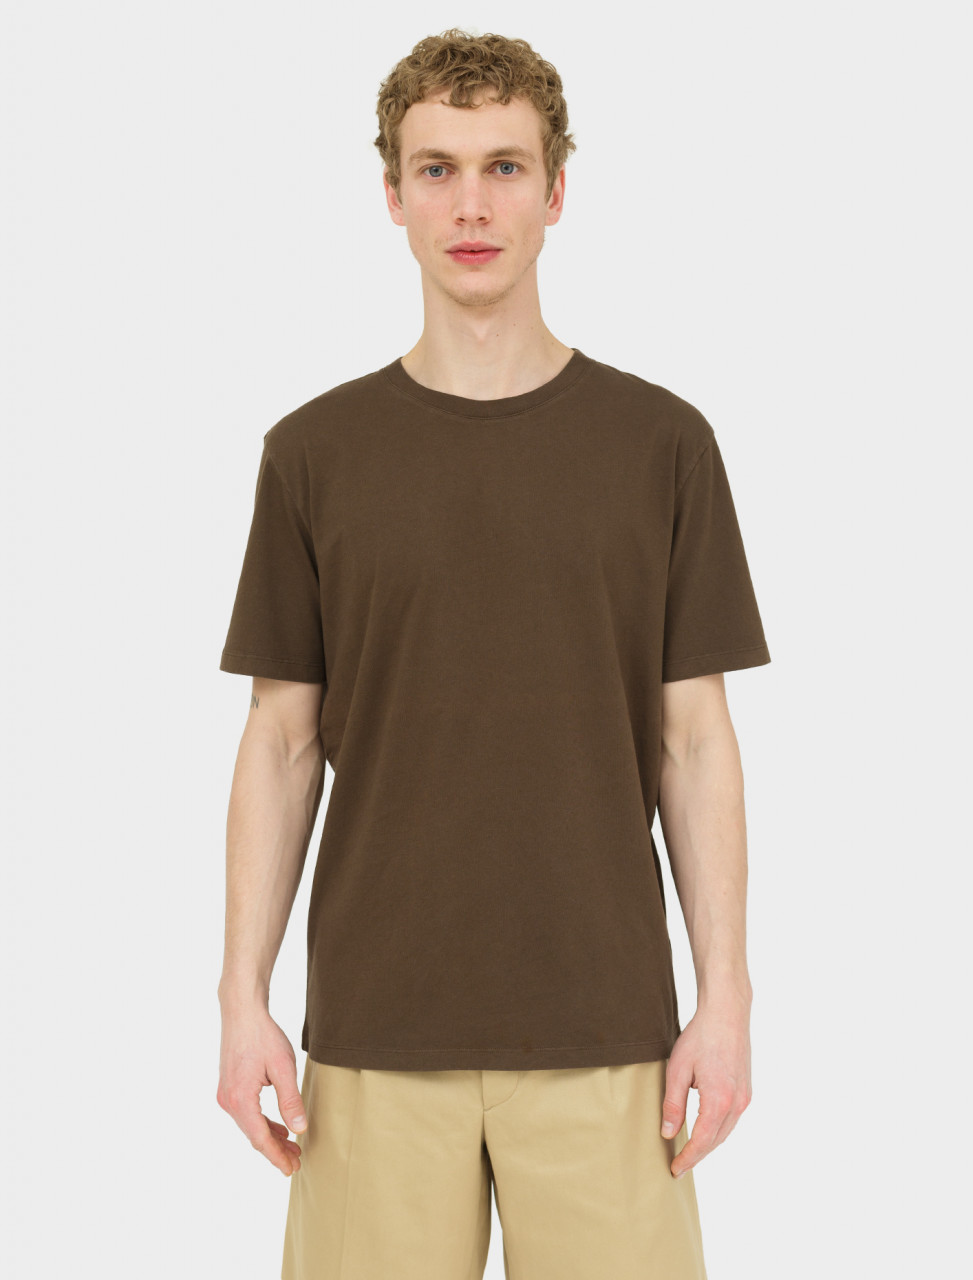 T-Shirt in Chocolate